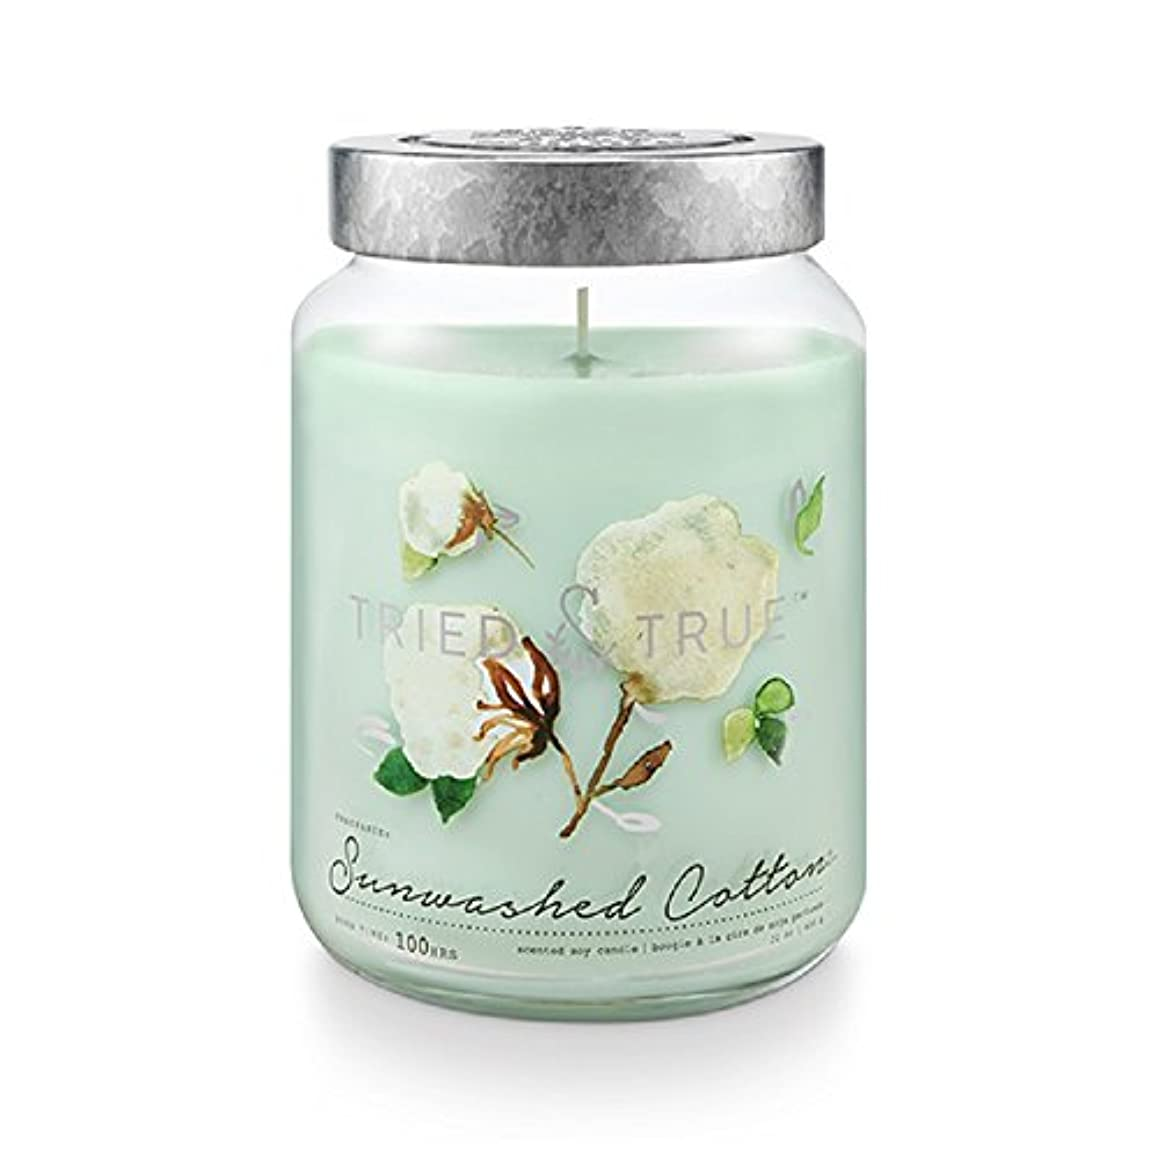 Tried and True SunwashedコットンExtra Large Jar Candle 22.2オンス